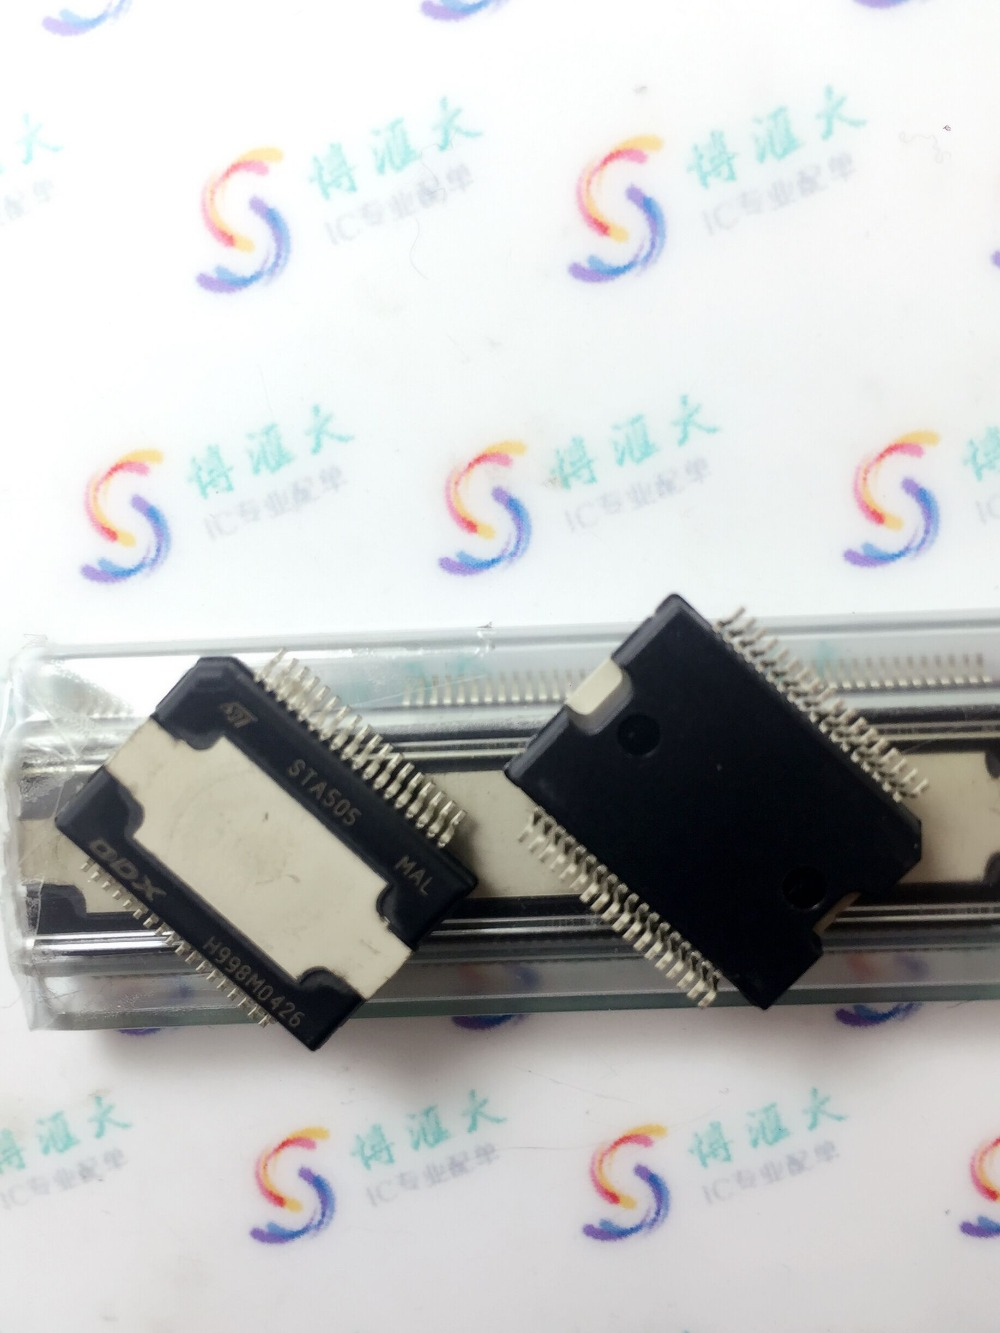 Module STA505 Original authentic and new Free Shipping sca103t d04 sca103t smd12 original authentic and new in stock free shipping 2pcs